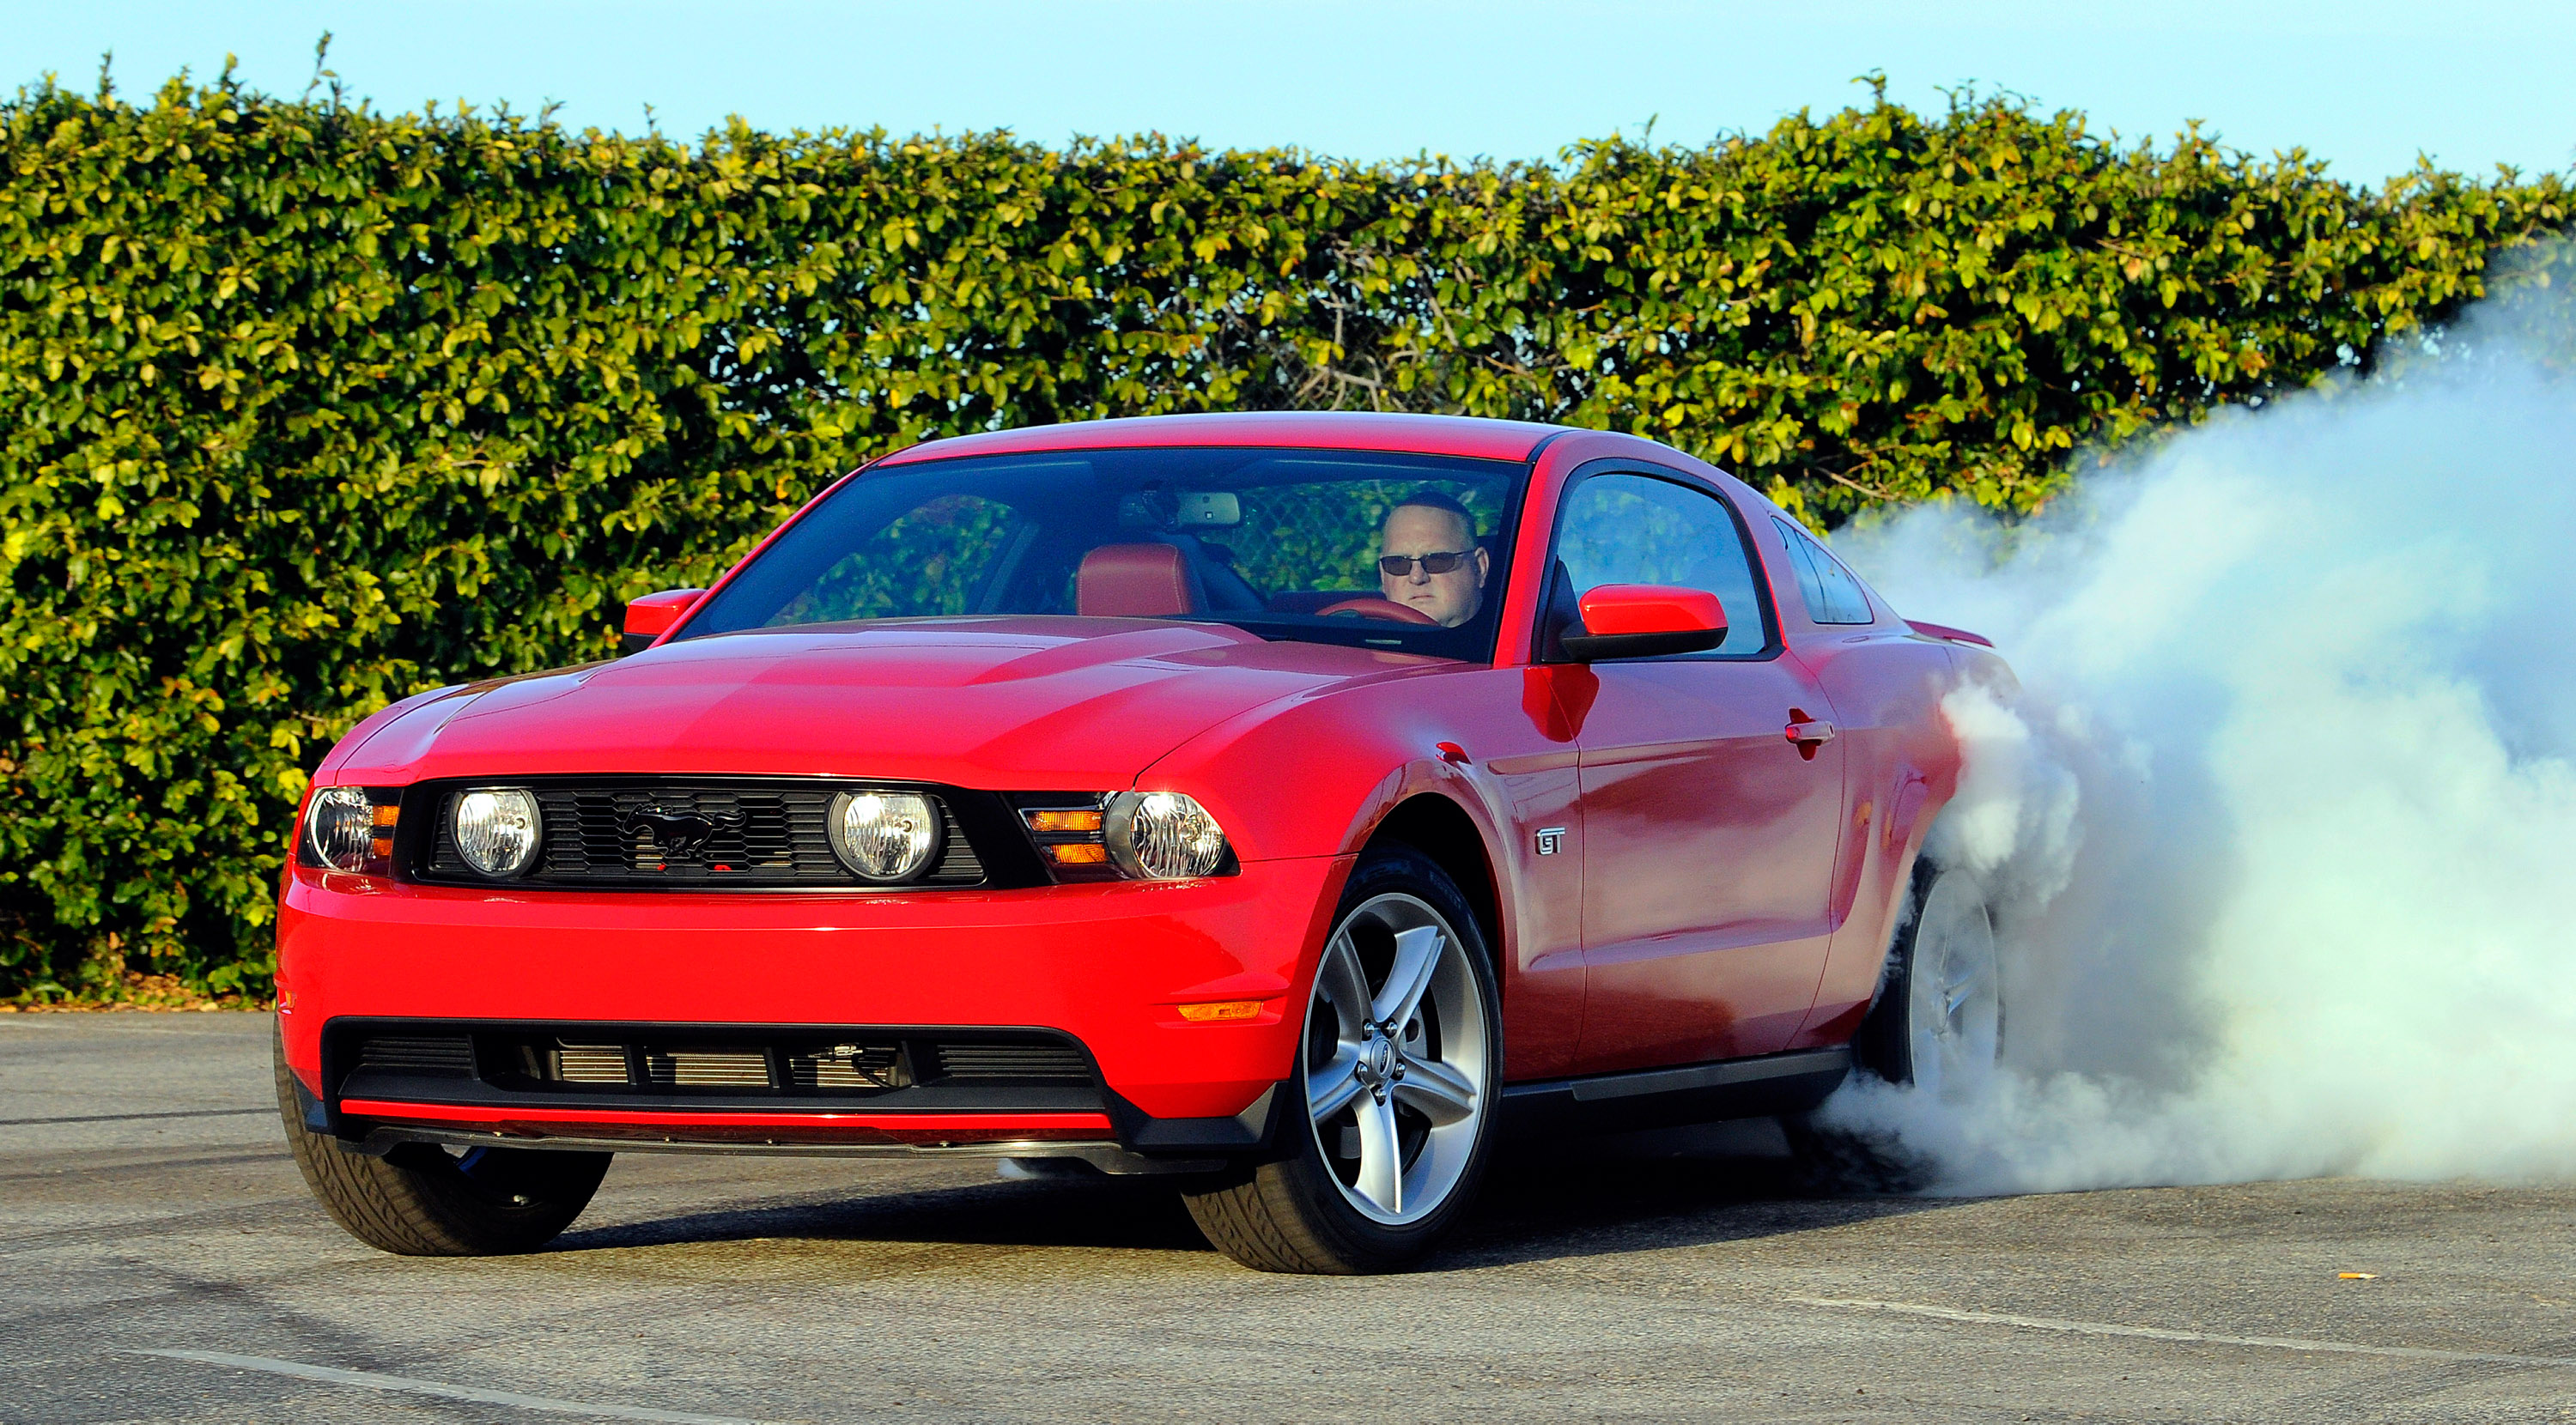 2010 Ford Mustang Gt Picture 21896